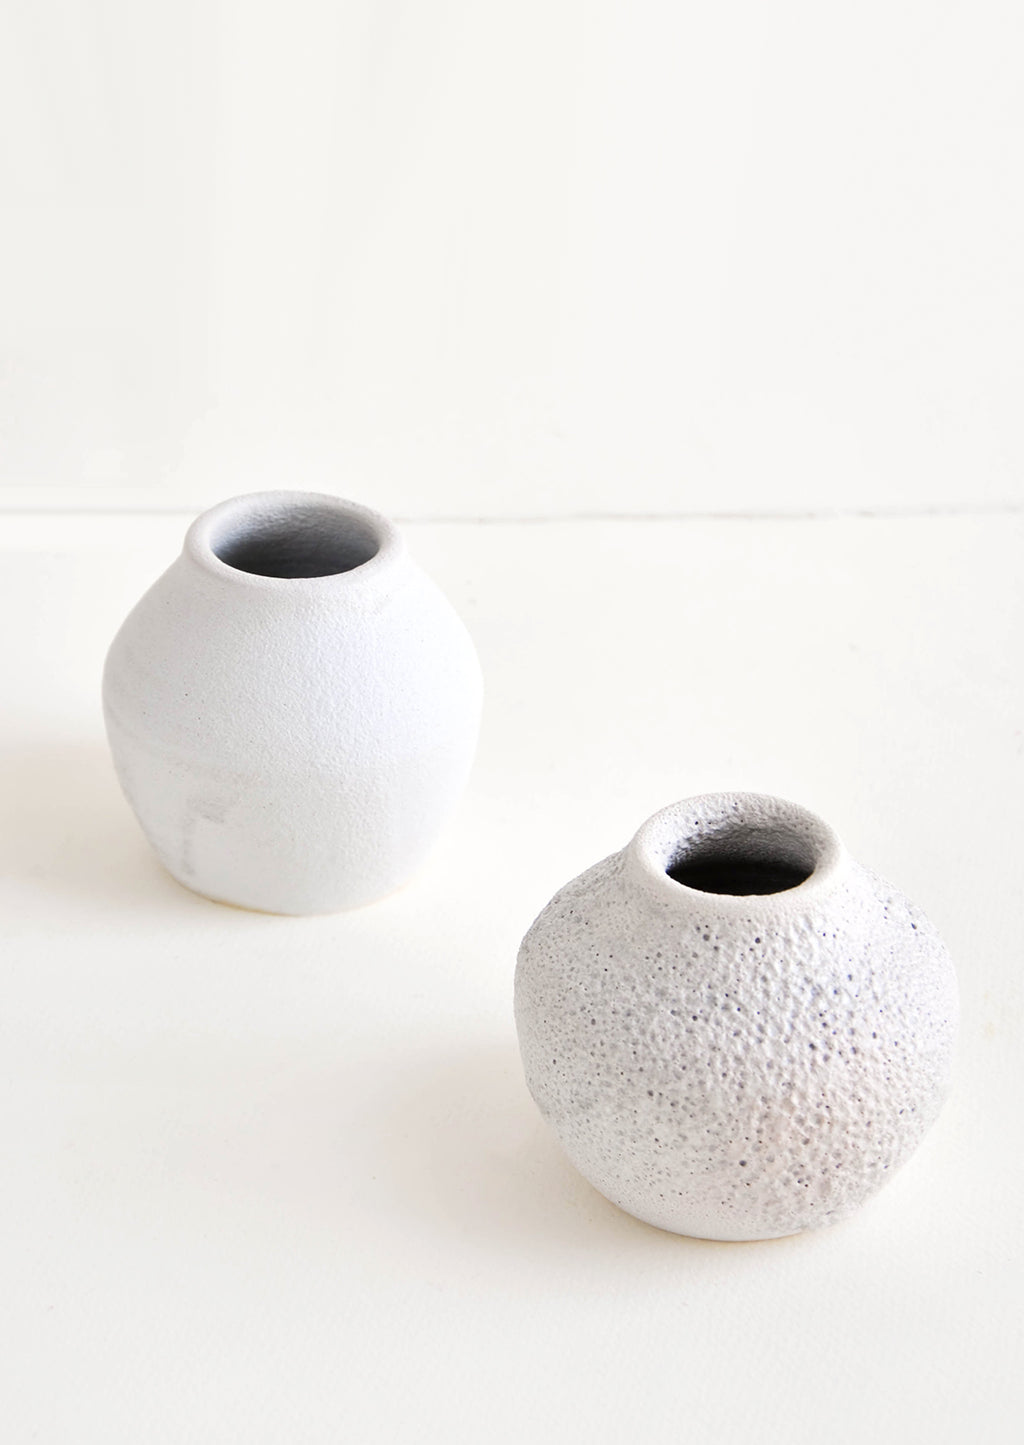 2: Small, round and wide vase with heavily textured, crater-like glaze in cool white